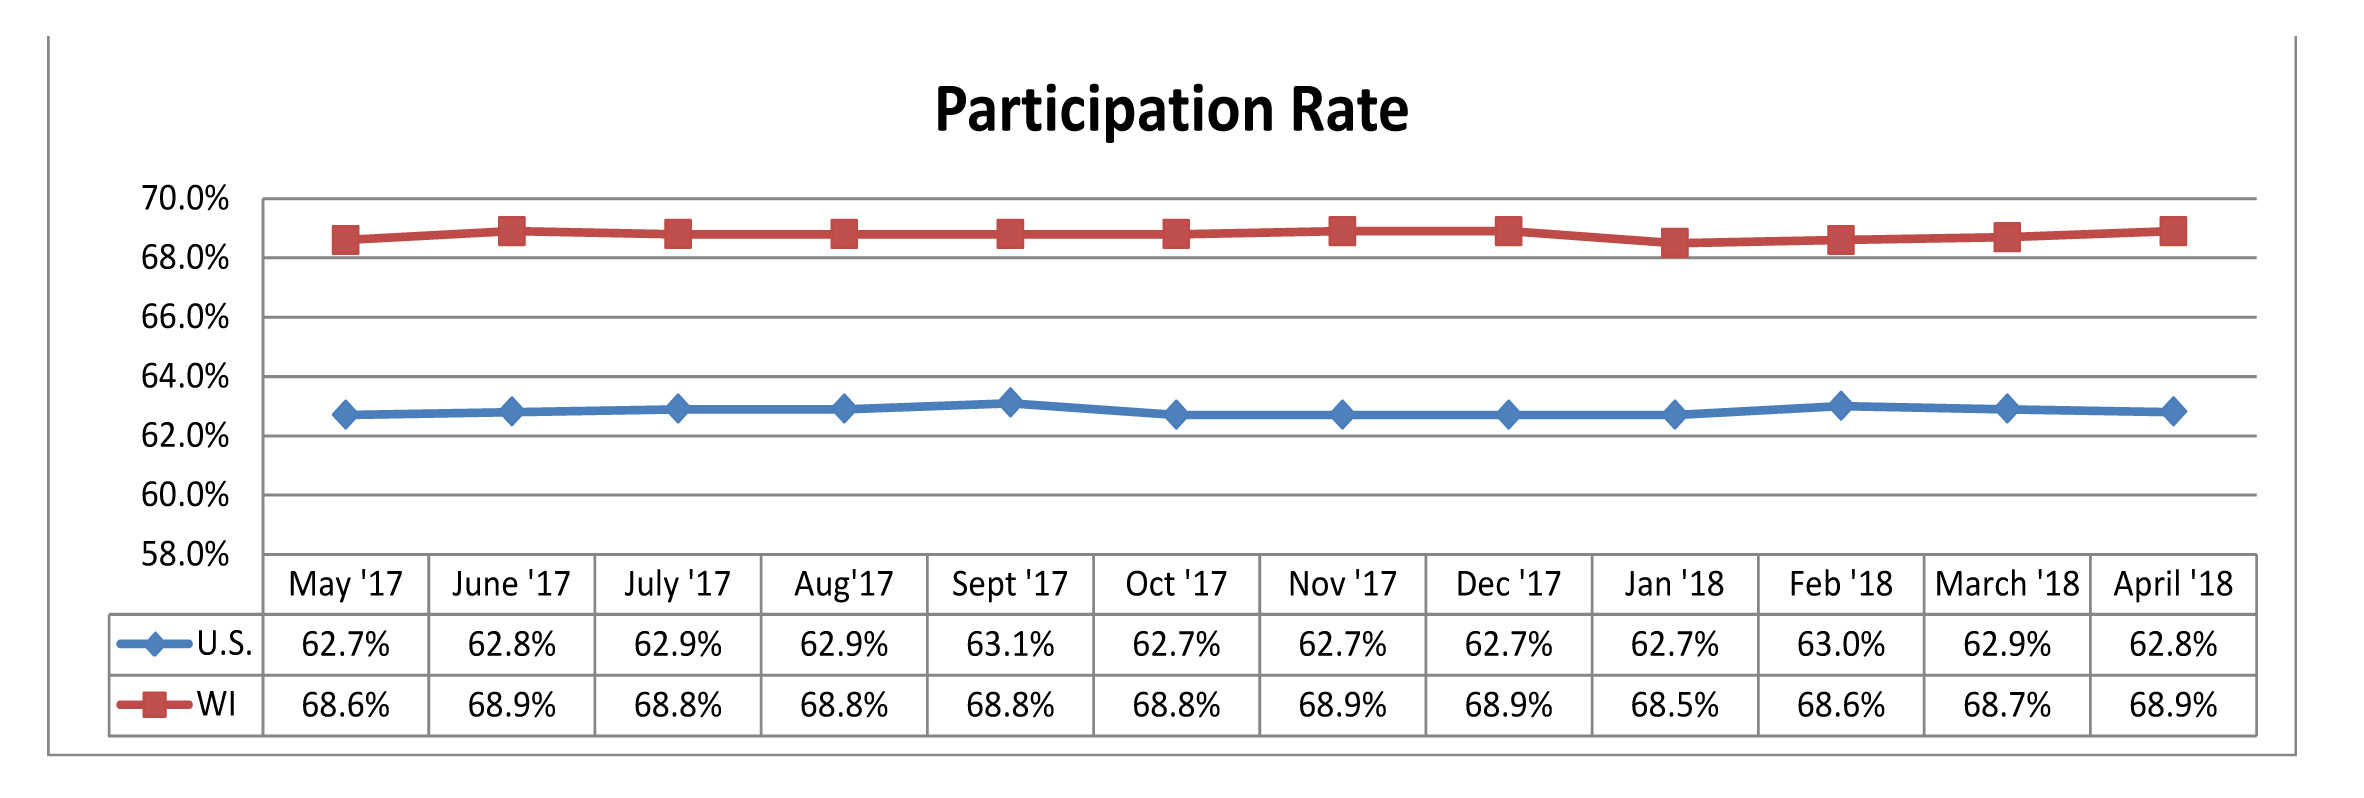 April 2018 Participation Rate